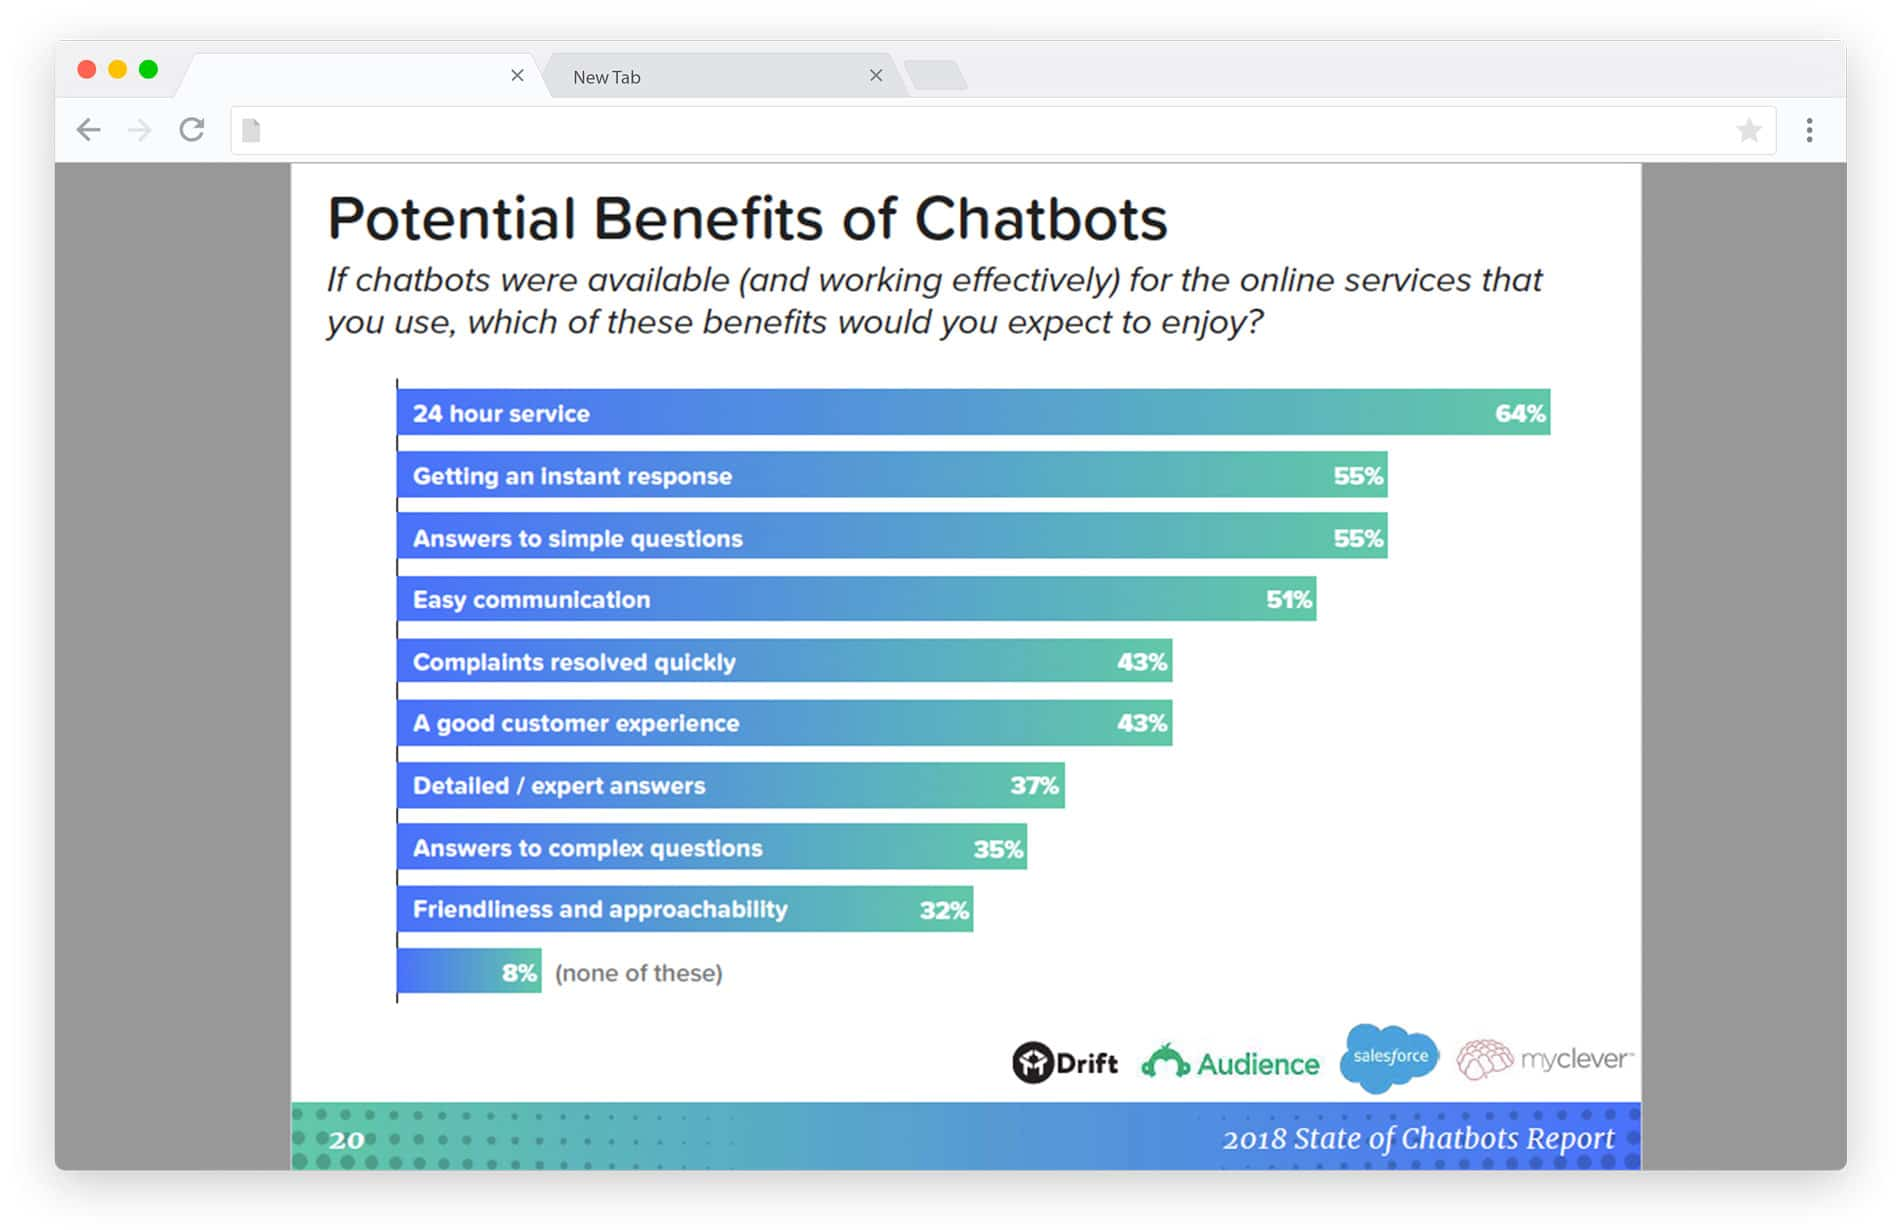 Potential benefits of a chatbot